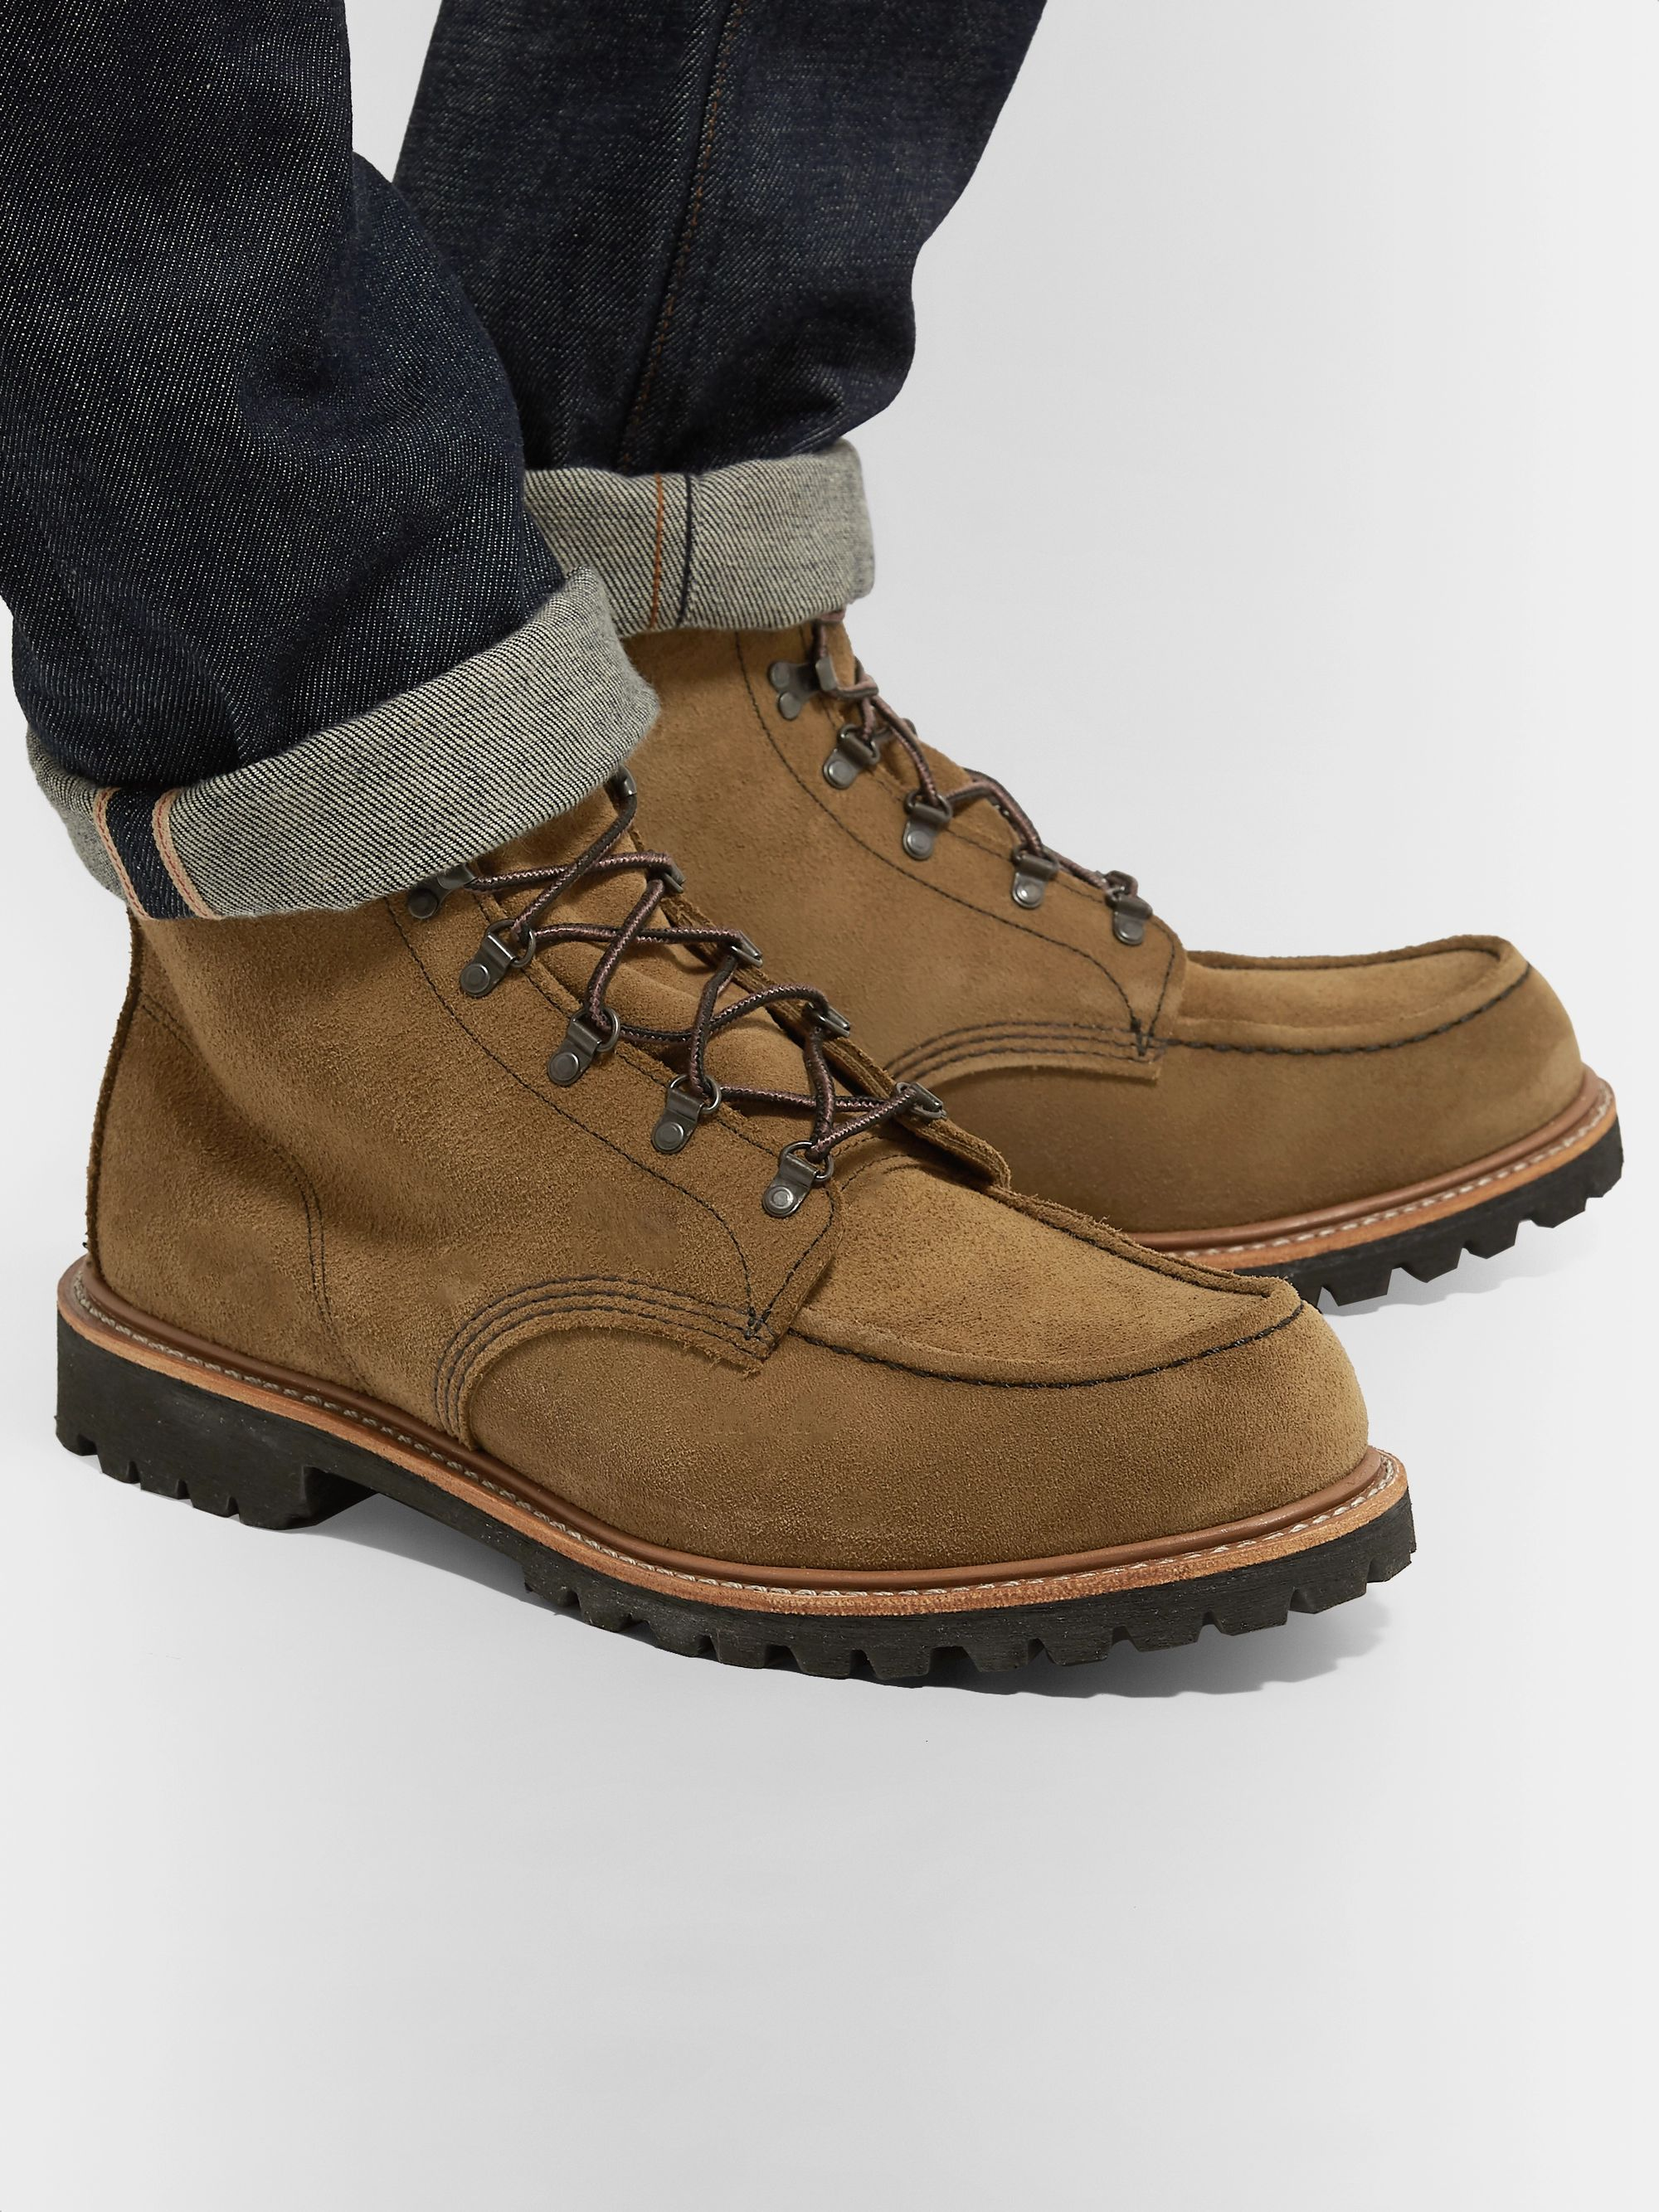 Red Wing Shoes 2926 Sawmill Roughout Leather Boots